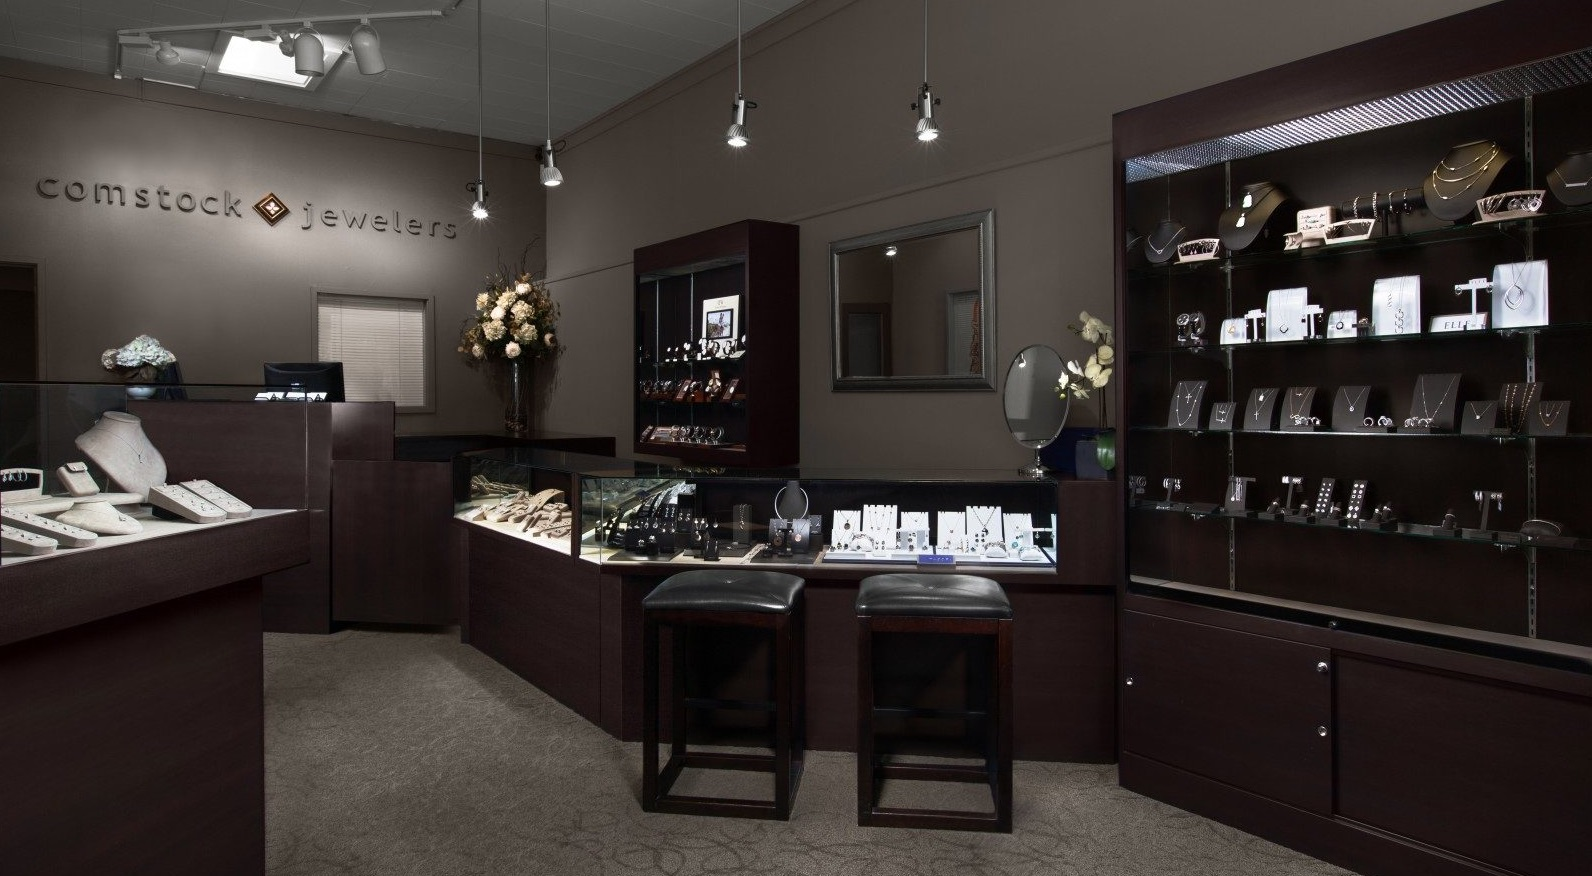 okc store stores fine new in jewellery oklahoma jewelry city near of best ok me